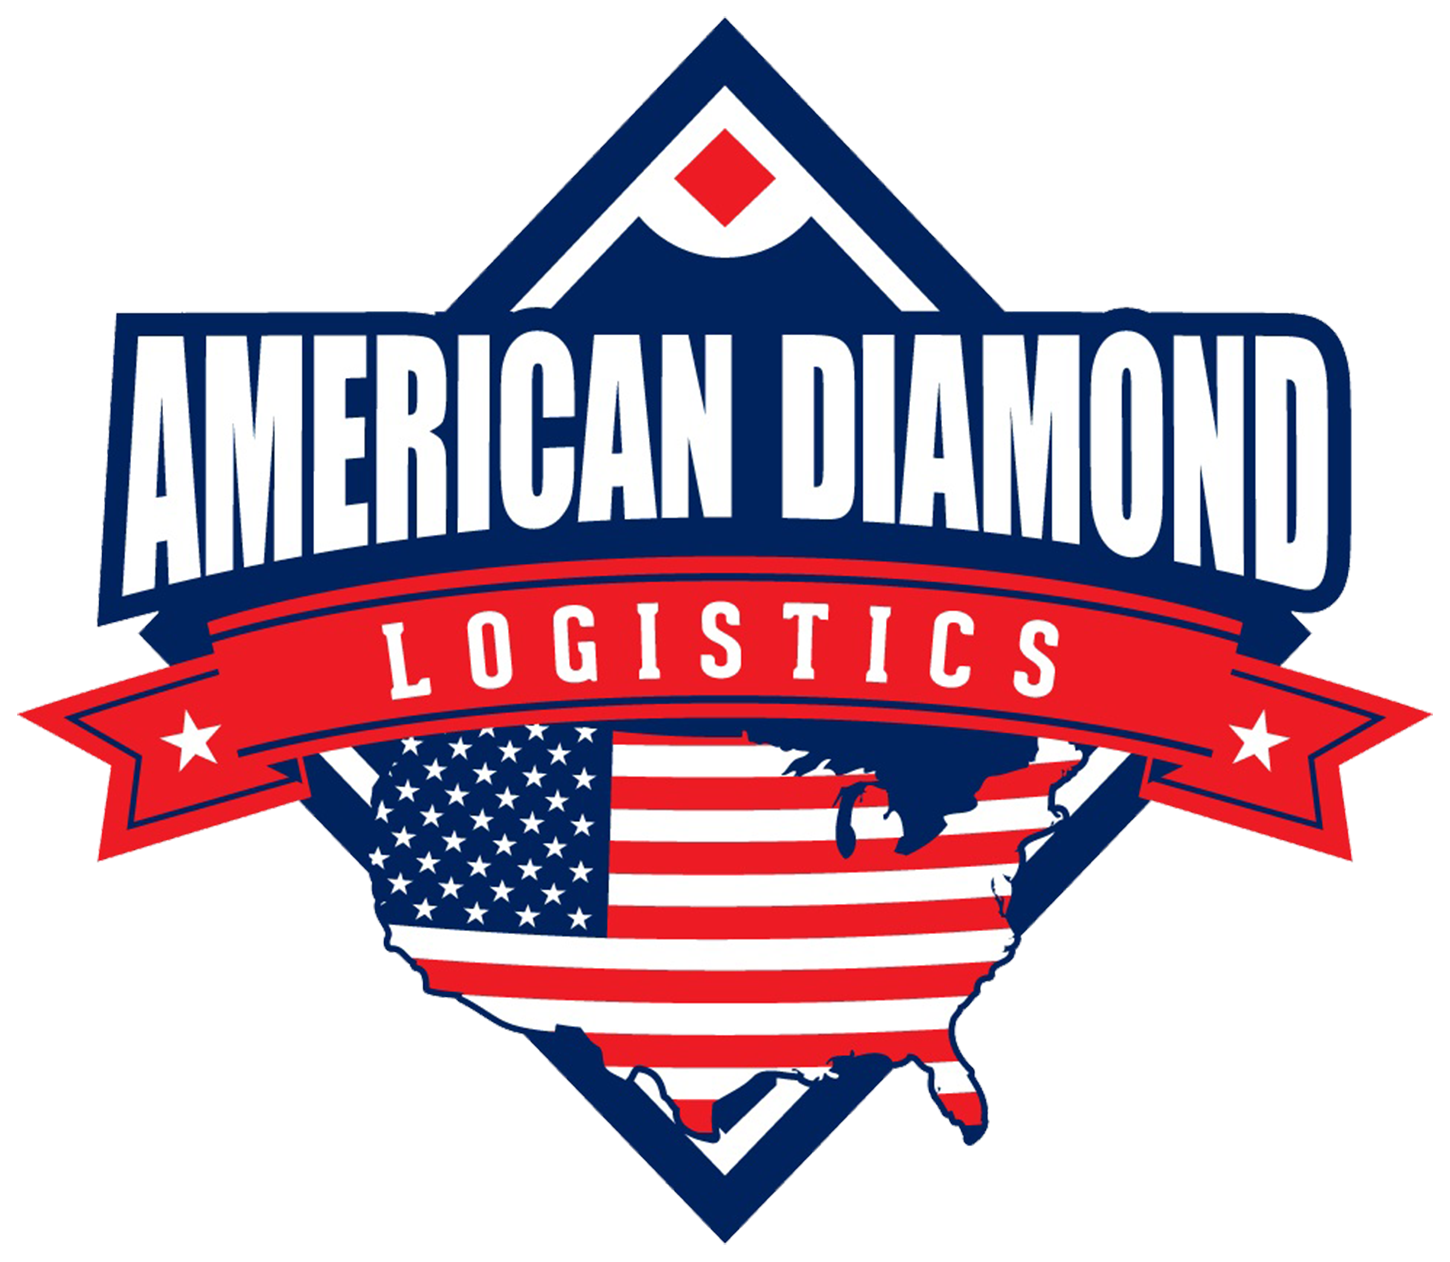 American Diamond Logistics